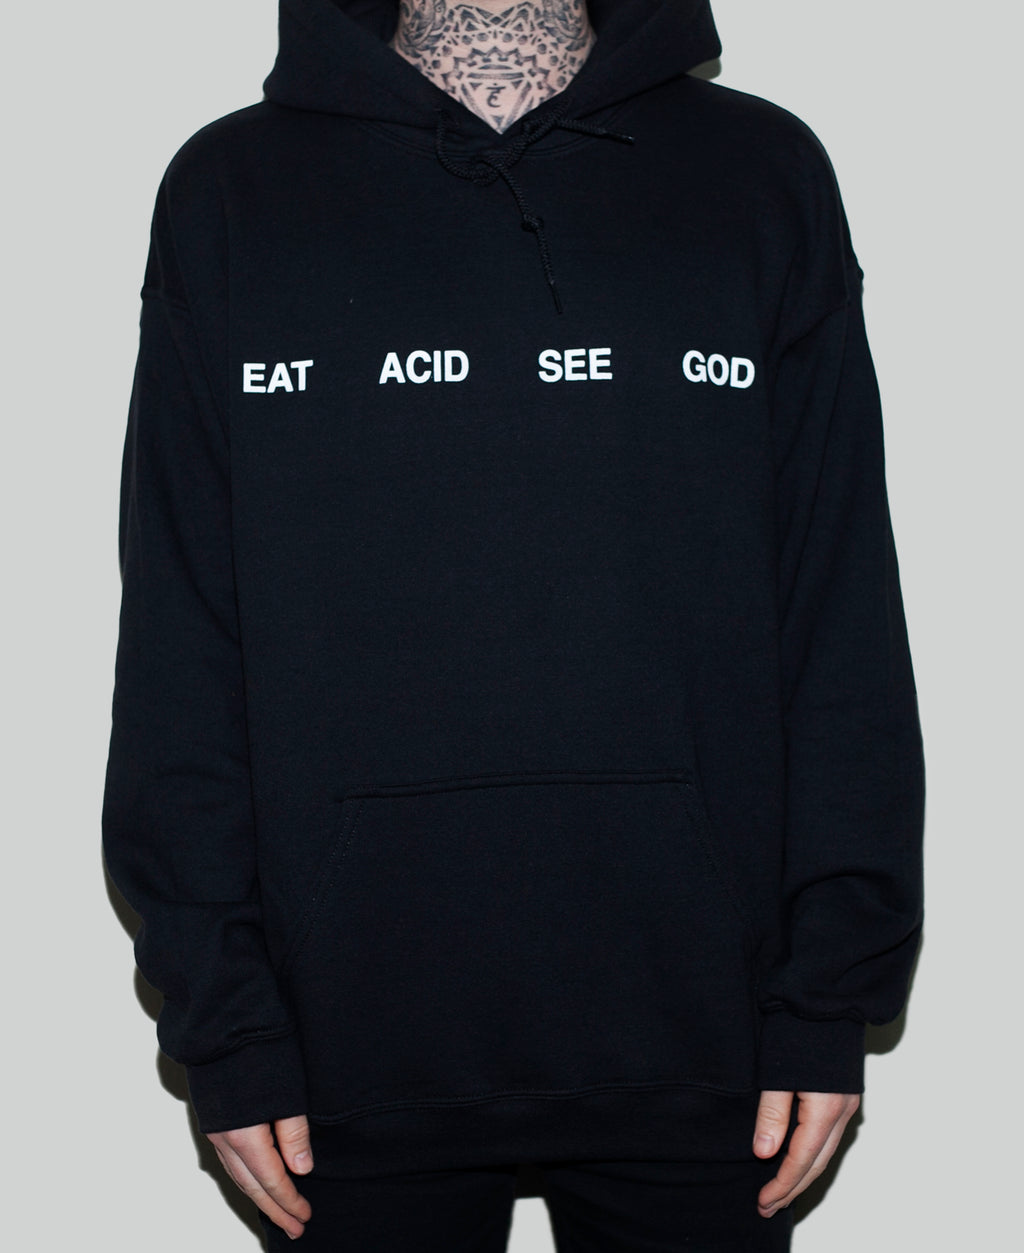 Eat Acid See God Hoodie - The Anti Life Ltd